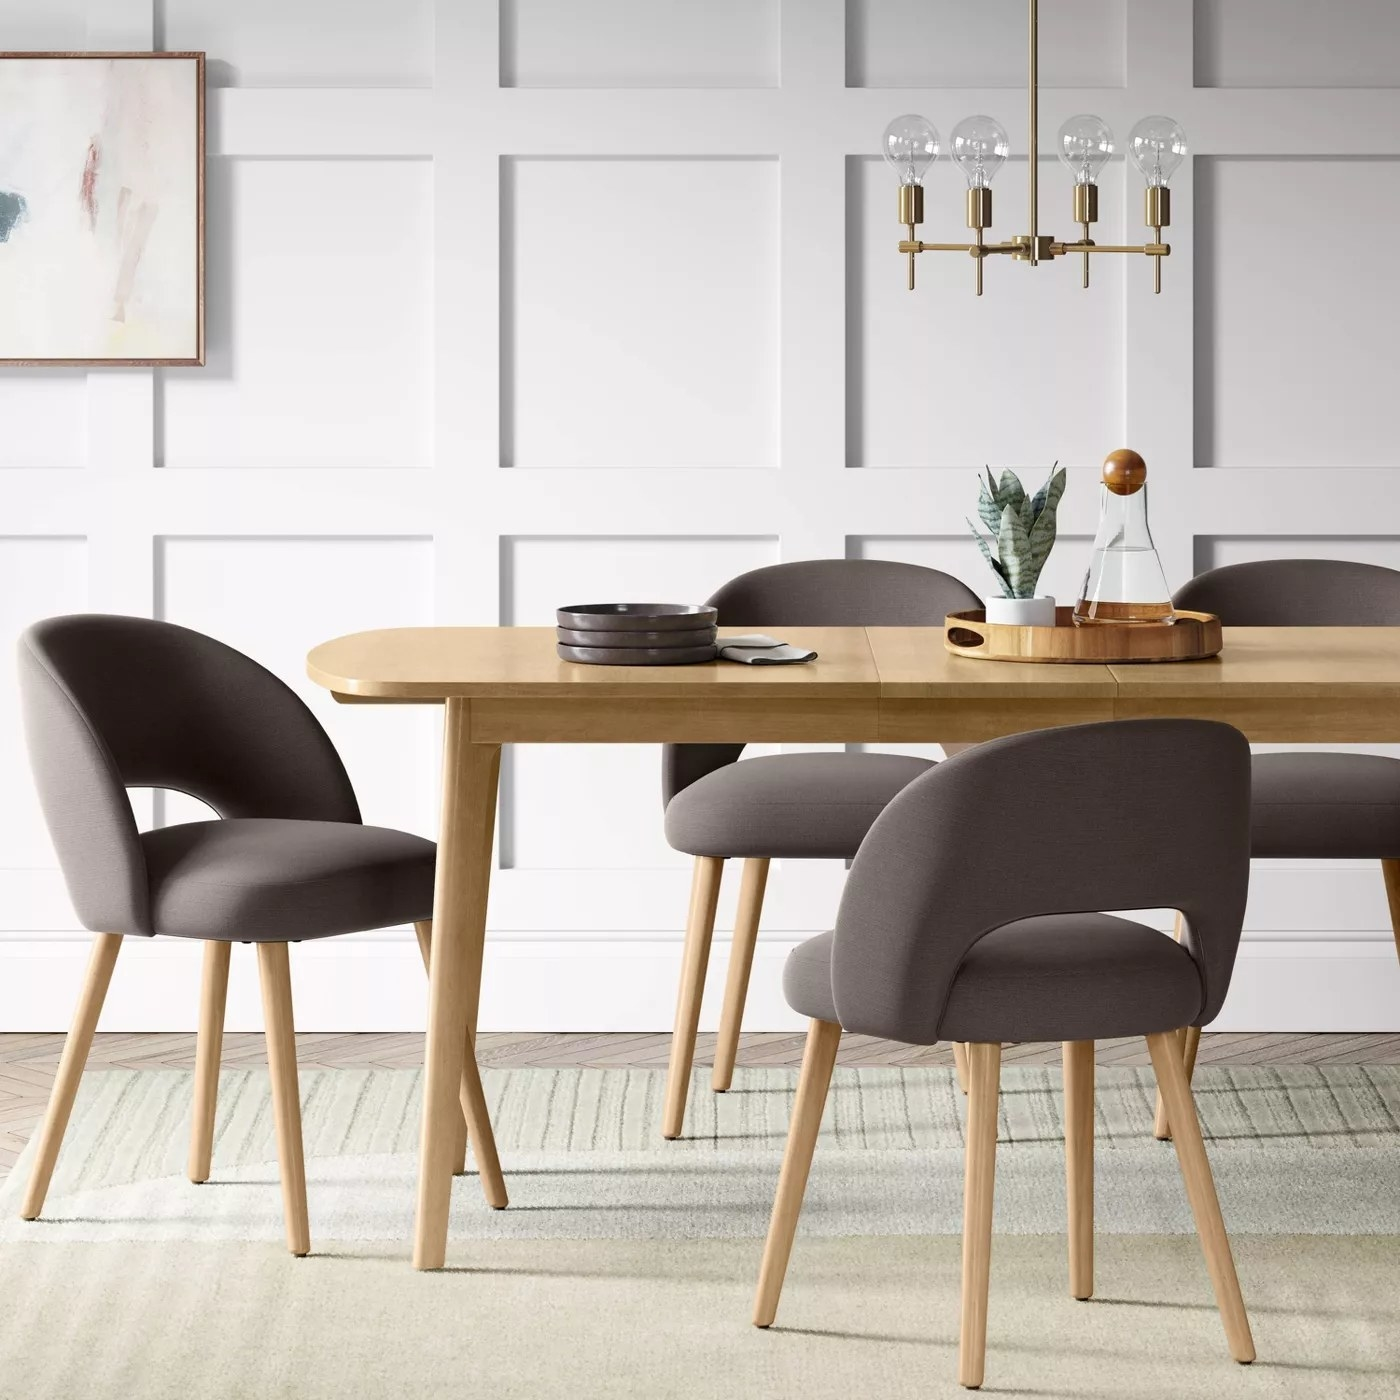 Several of the dining chairs with a cushioned open back and seat and wooden legs in a dining room